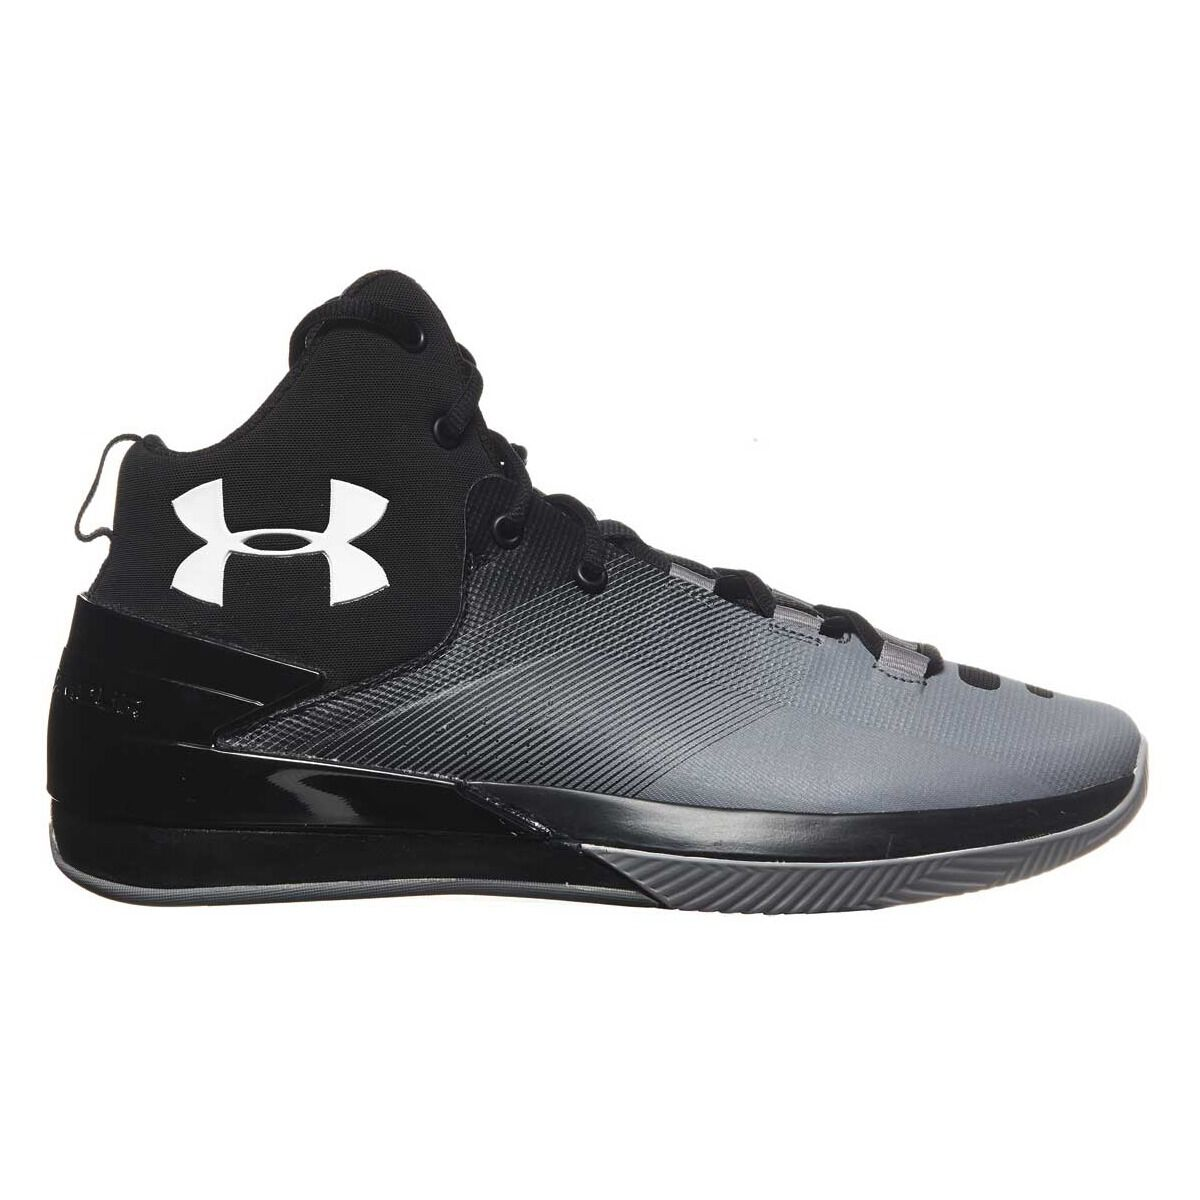 ecd8faffe4e9 clearance nike romaleos 3 0c6be b059c  italy under armour rocket 3 mens  basketball shoes black grey us 10.5 black grey f4392 62eaf